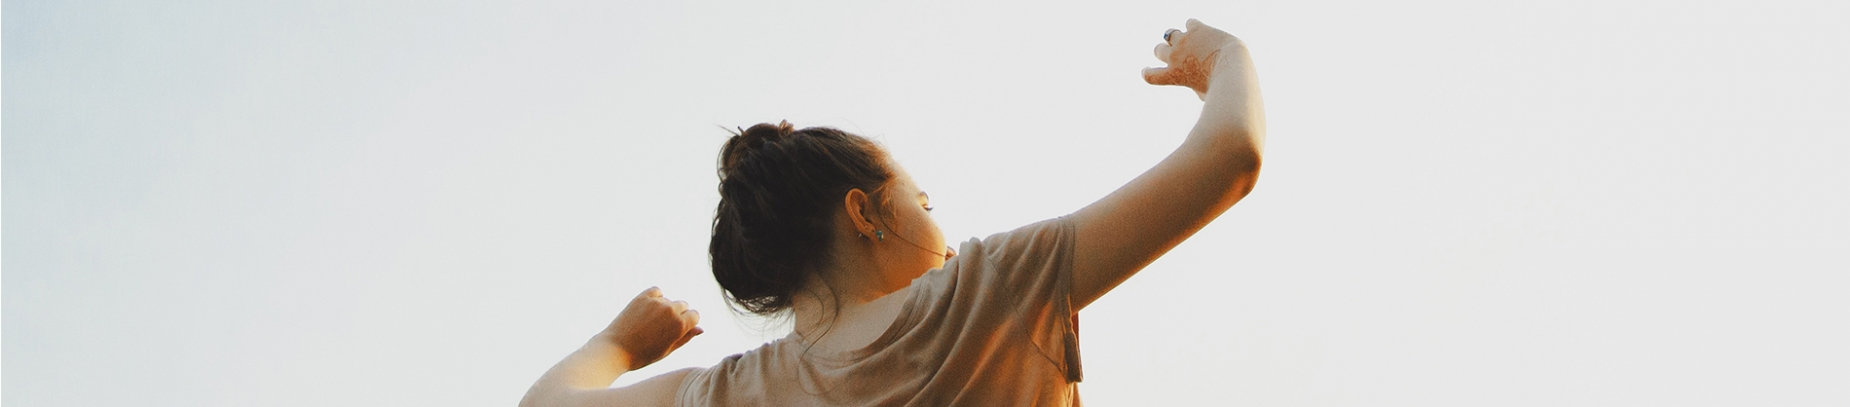 A women with her arms in the air towards the sky